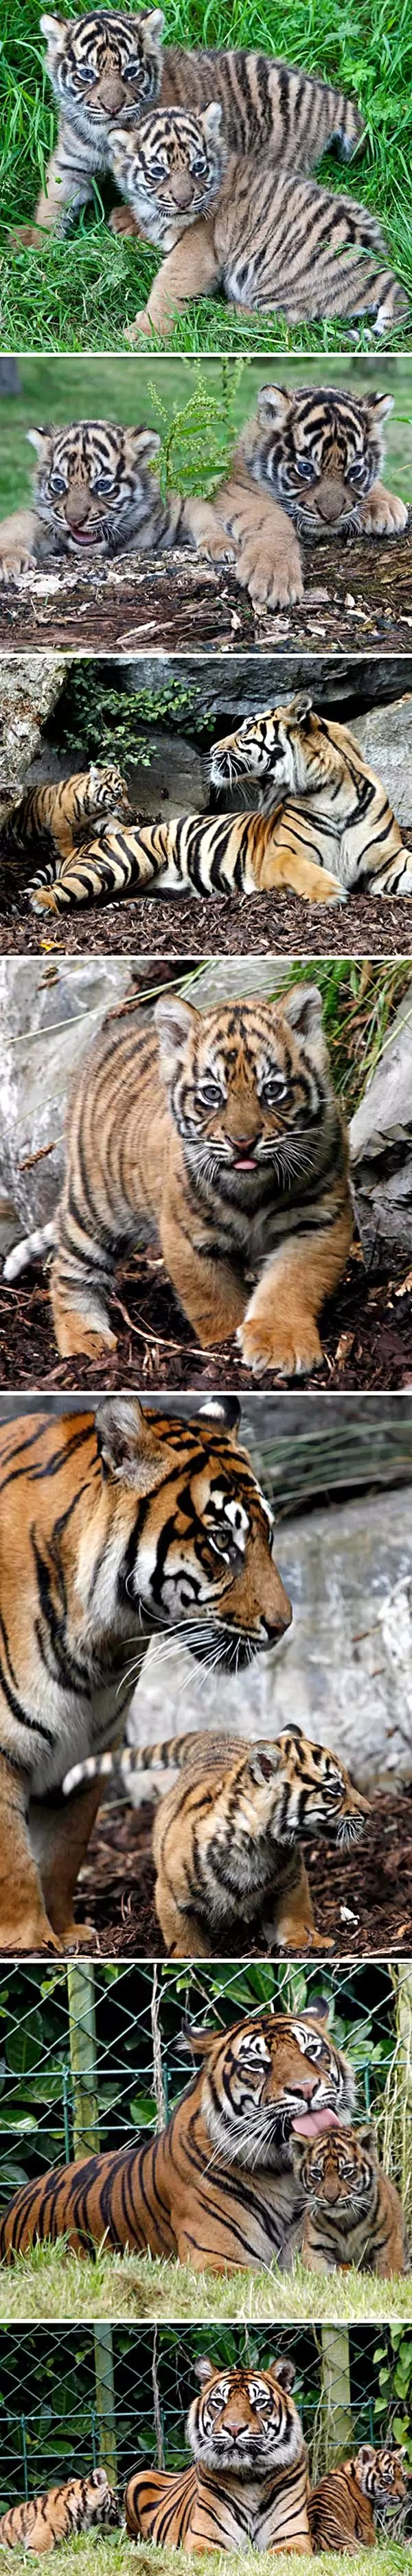 Sumatran tiger cubs born in Dublin Zoo